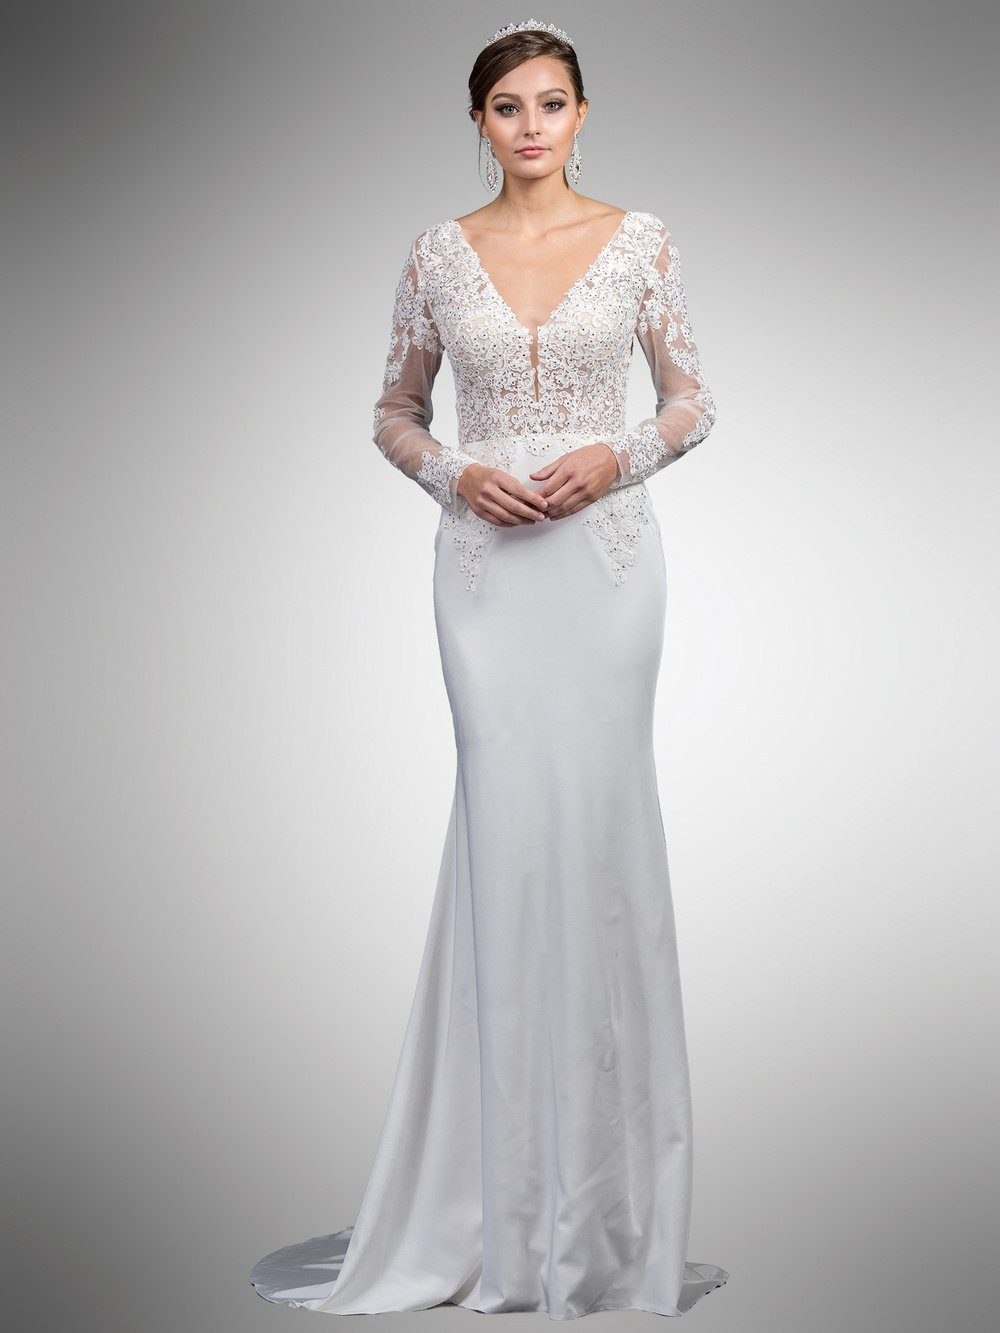 Lace Wedding Dress With Sleeves.Long Sleeve Lace Wedding Dress Dq0052